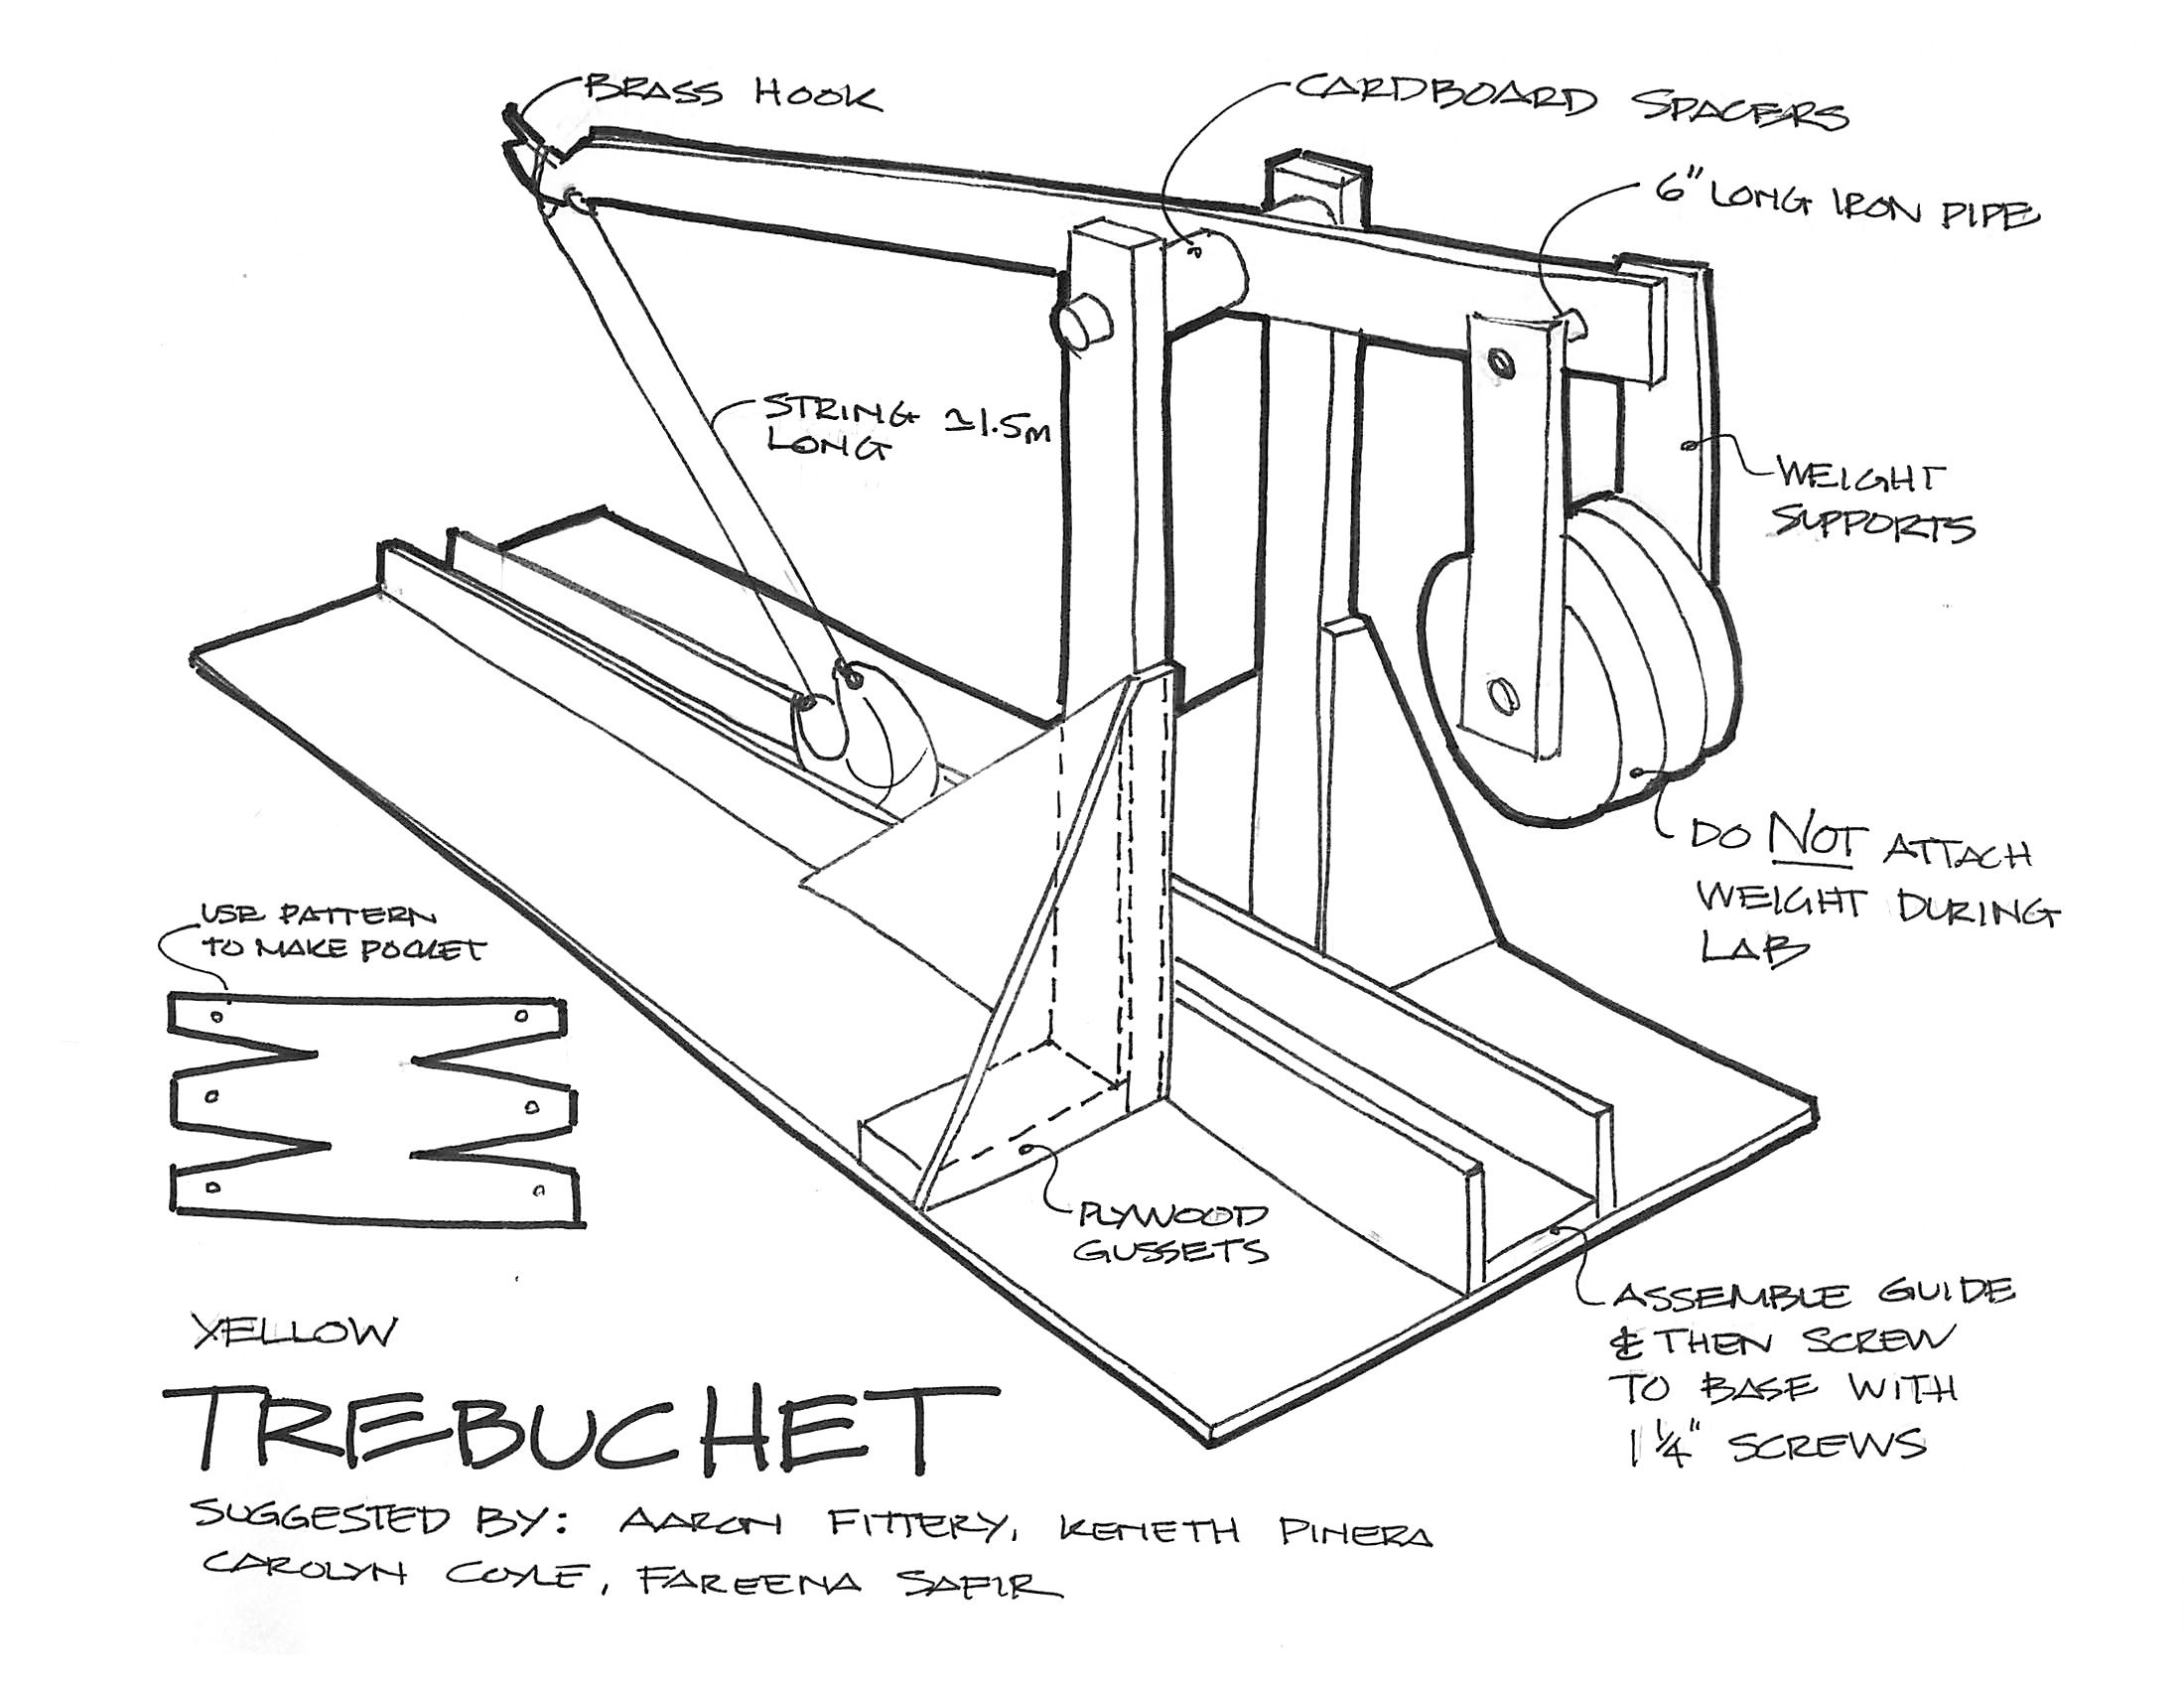 trebuchet plans - Google Search | DIY | Wood plans, How to plan, Woodworking plans